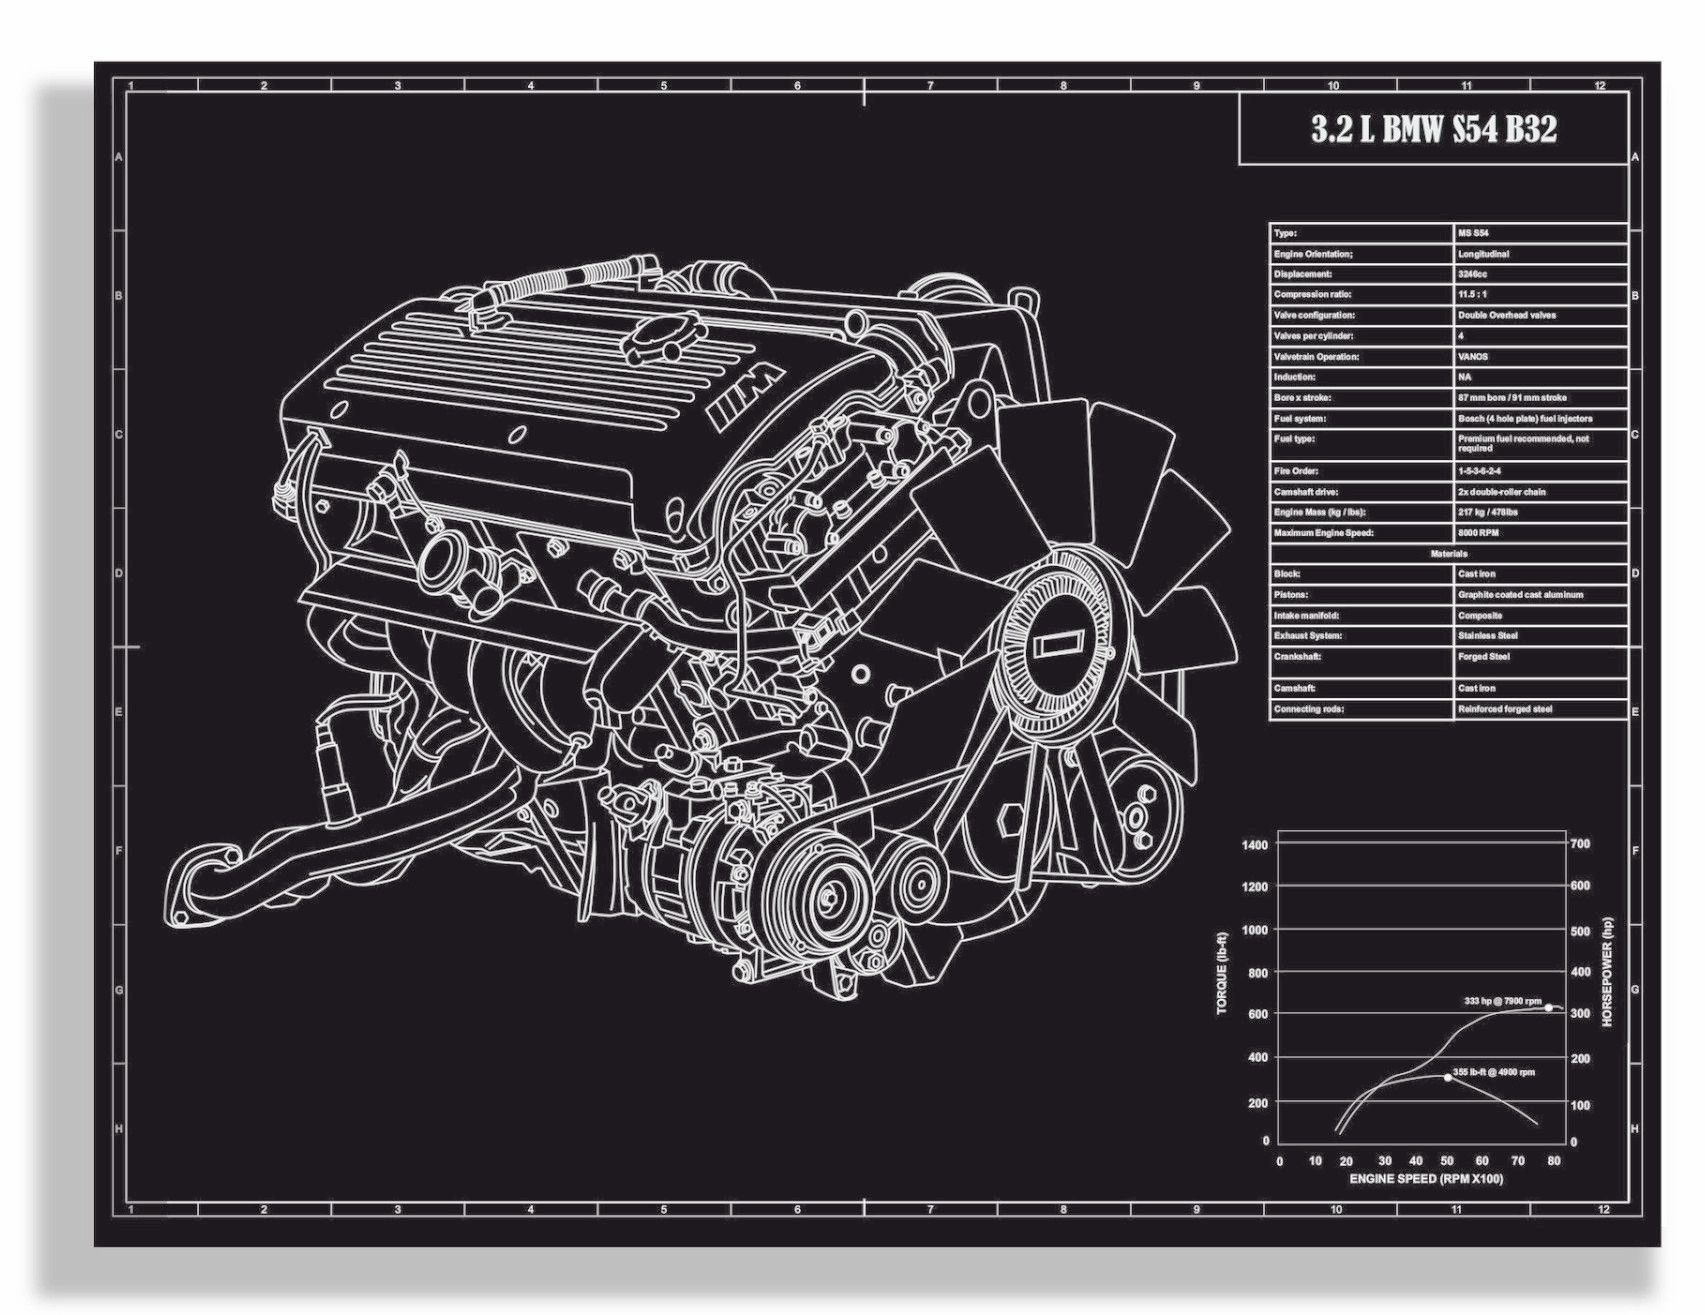 medium resolution of bmw e46 m3 s54 b32 engine